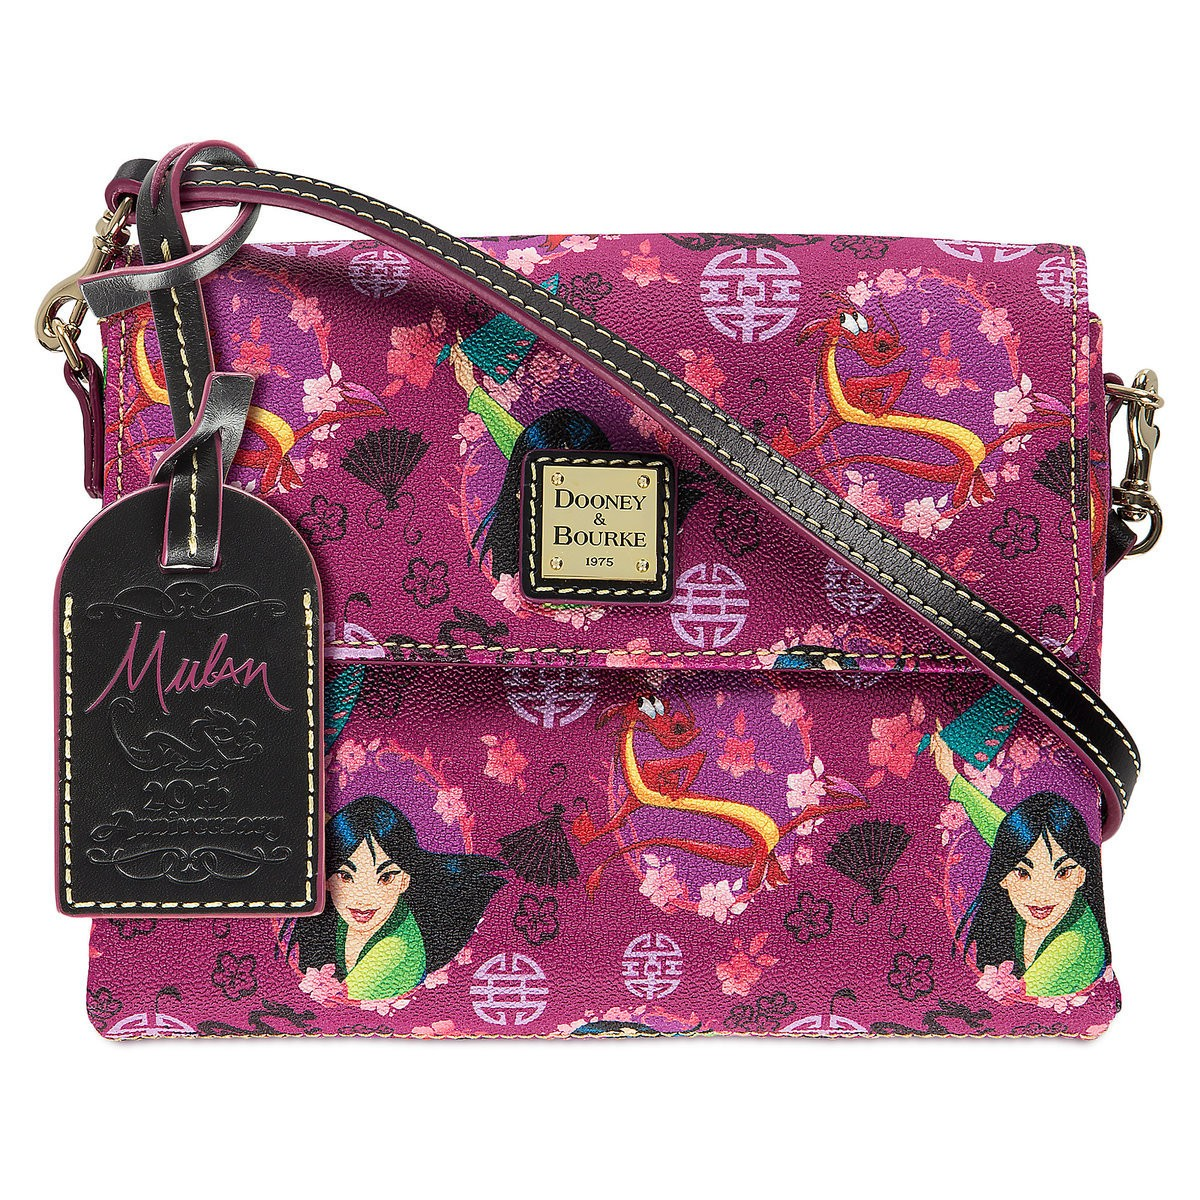 Dooney & Bourke releases 20th anniversary Mulan collection - Disney ...